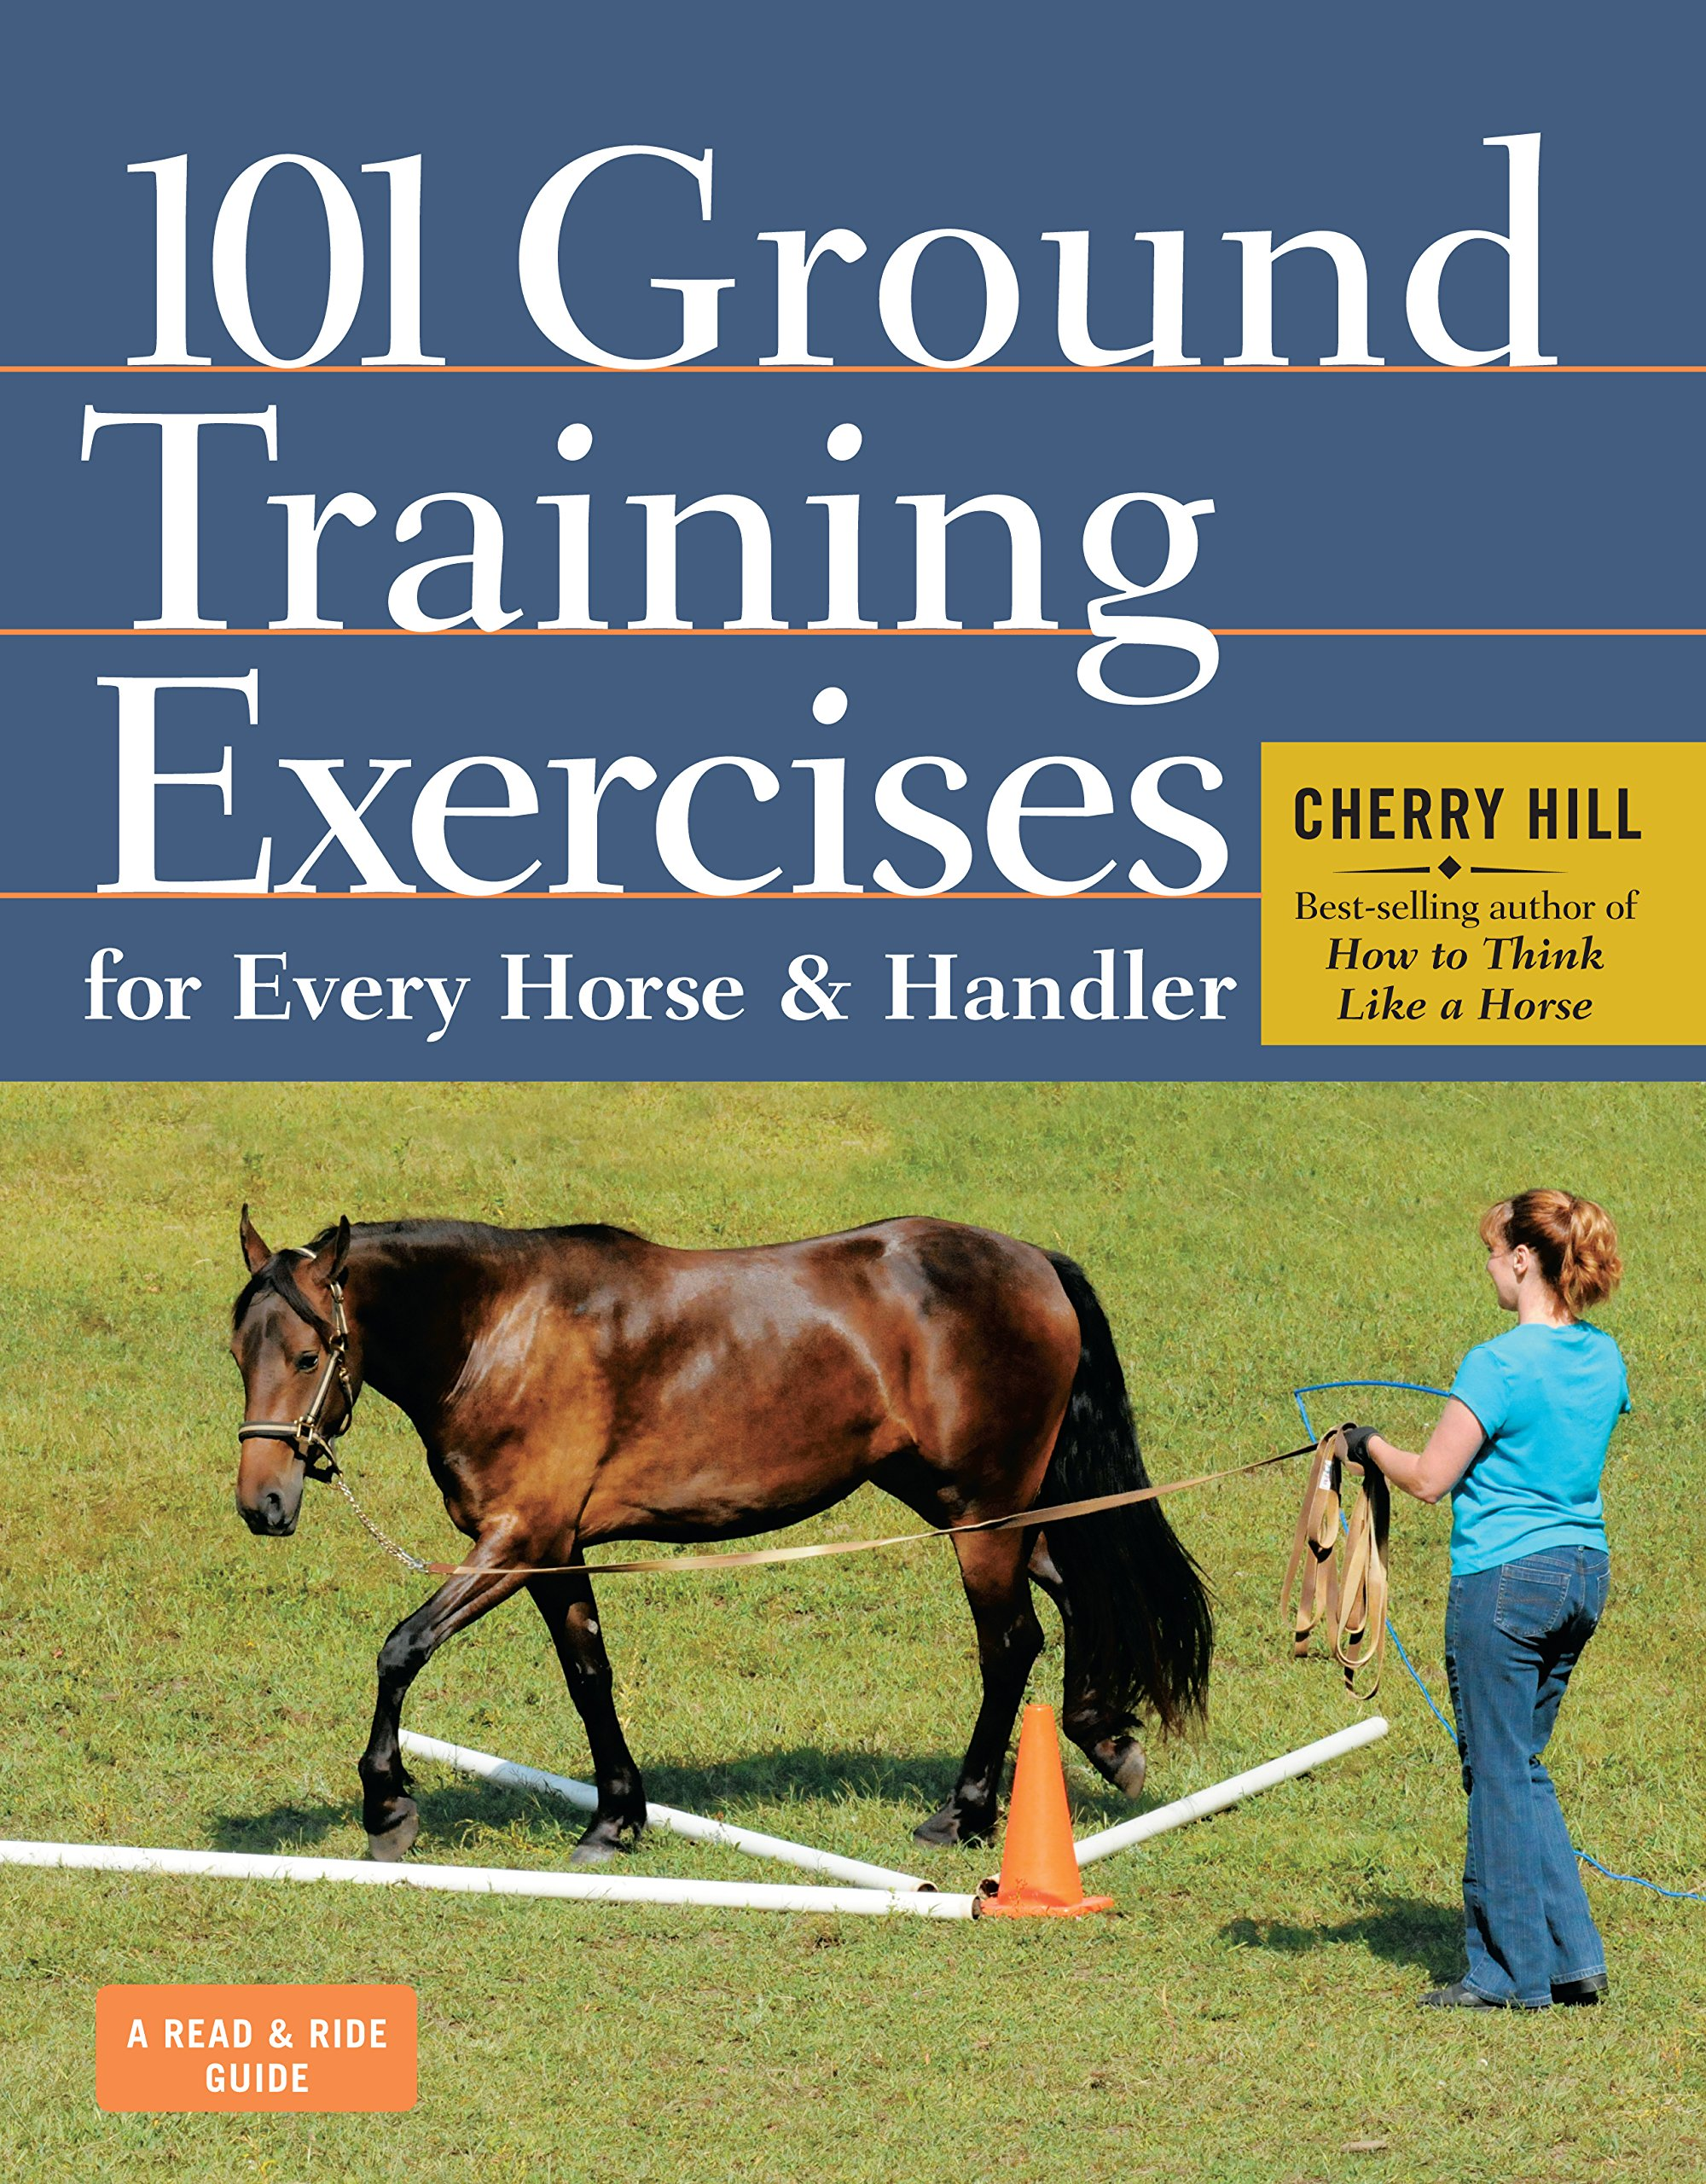 101 Ground Training Exercises for Every Horse & Handler (Read & Ride):  Cherry Hill: 0884268584492: Amazon.com: Books